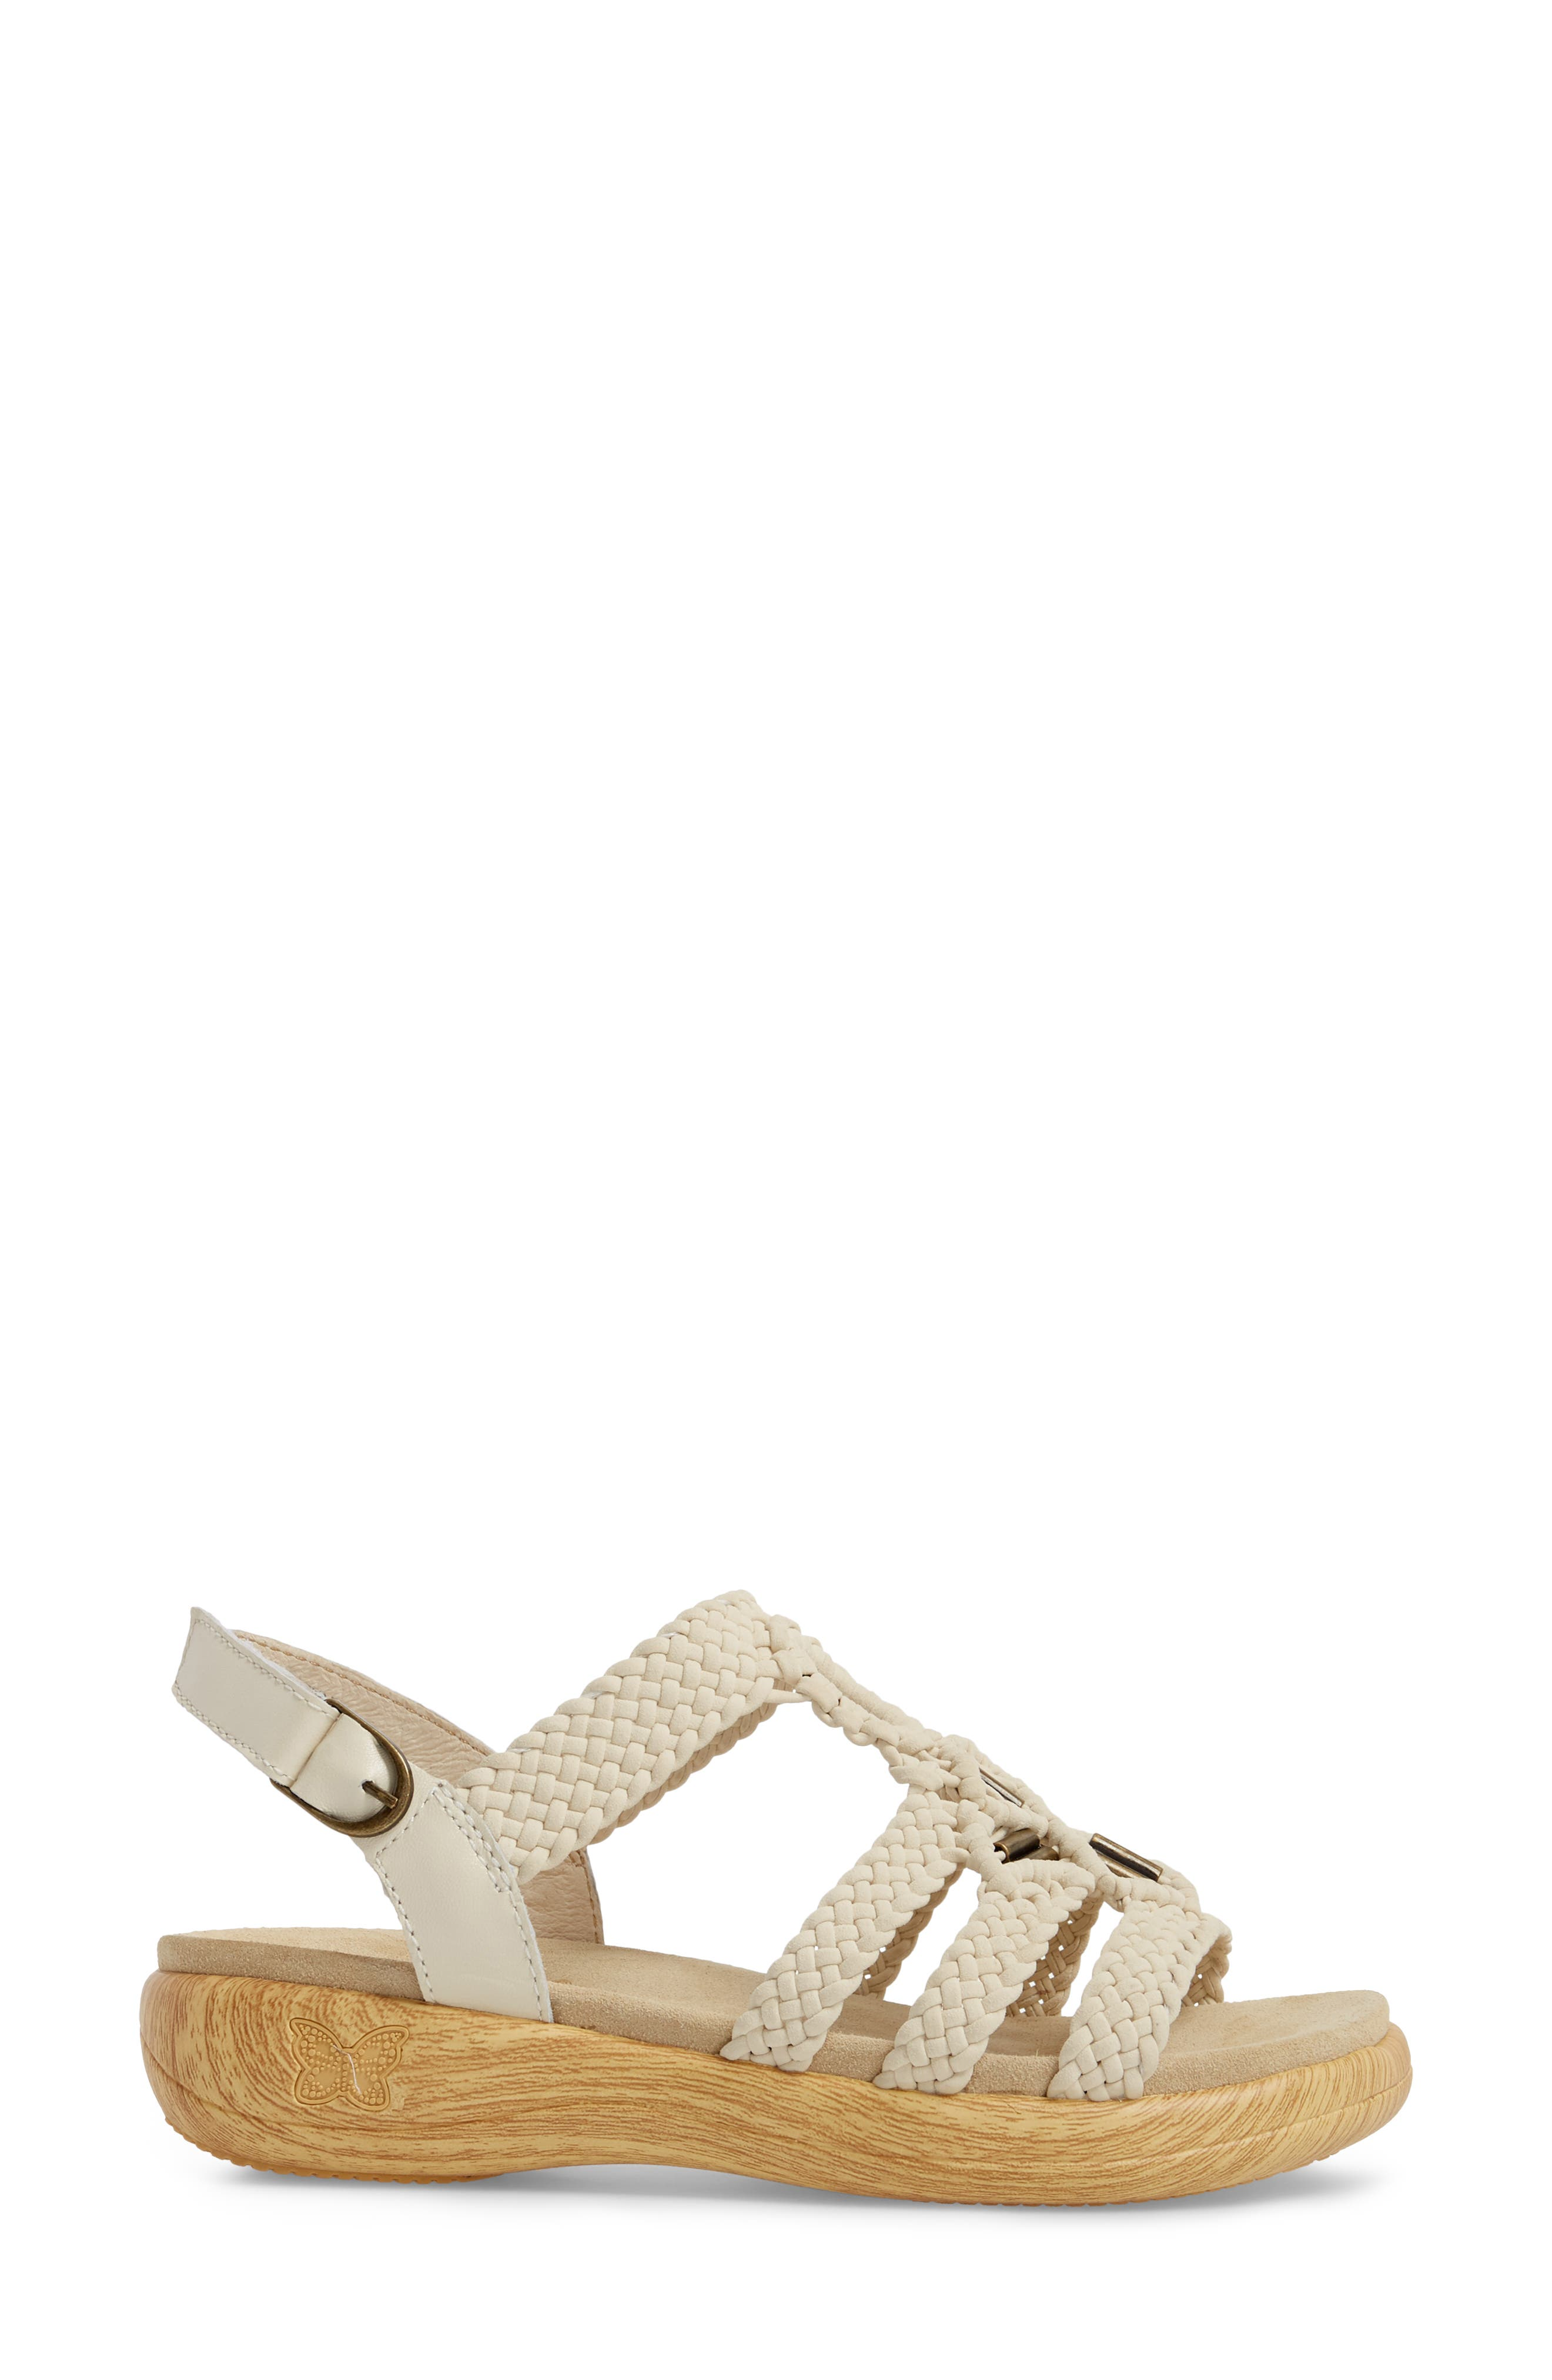 Jena Sandal,                             Alternate thumbnail 8, color,